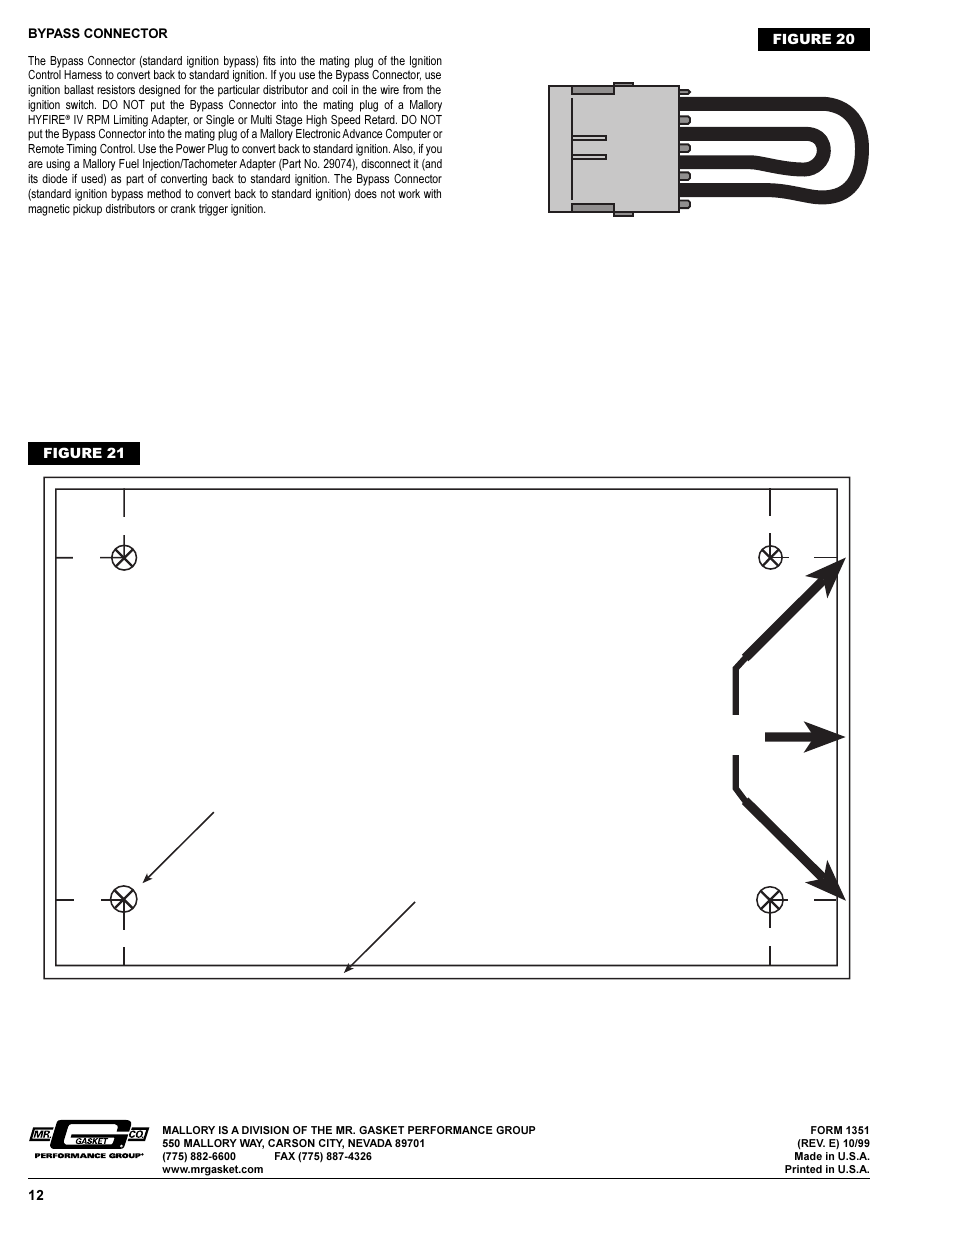 Mallory Hyfire Wiring Diagram 692 Trusted 5048201 Enthusiast Diagrams U2022 7